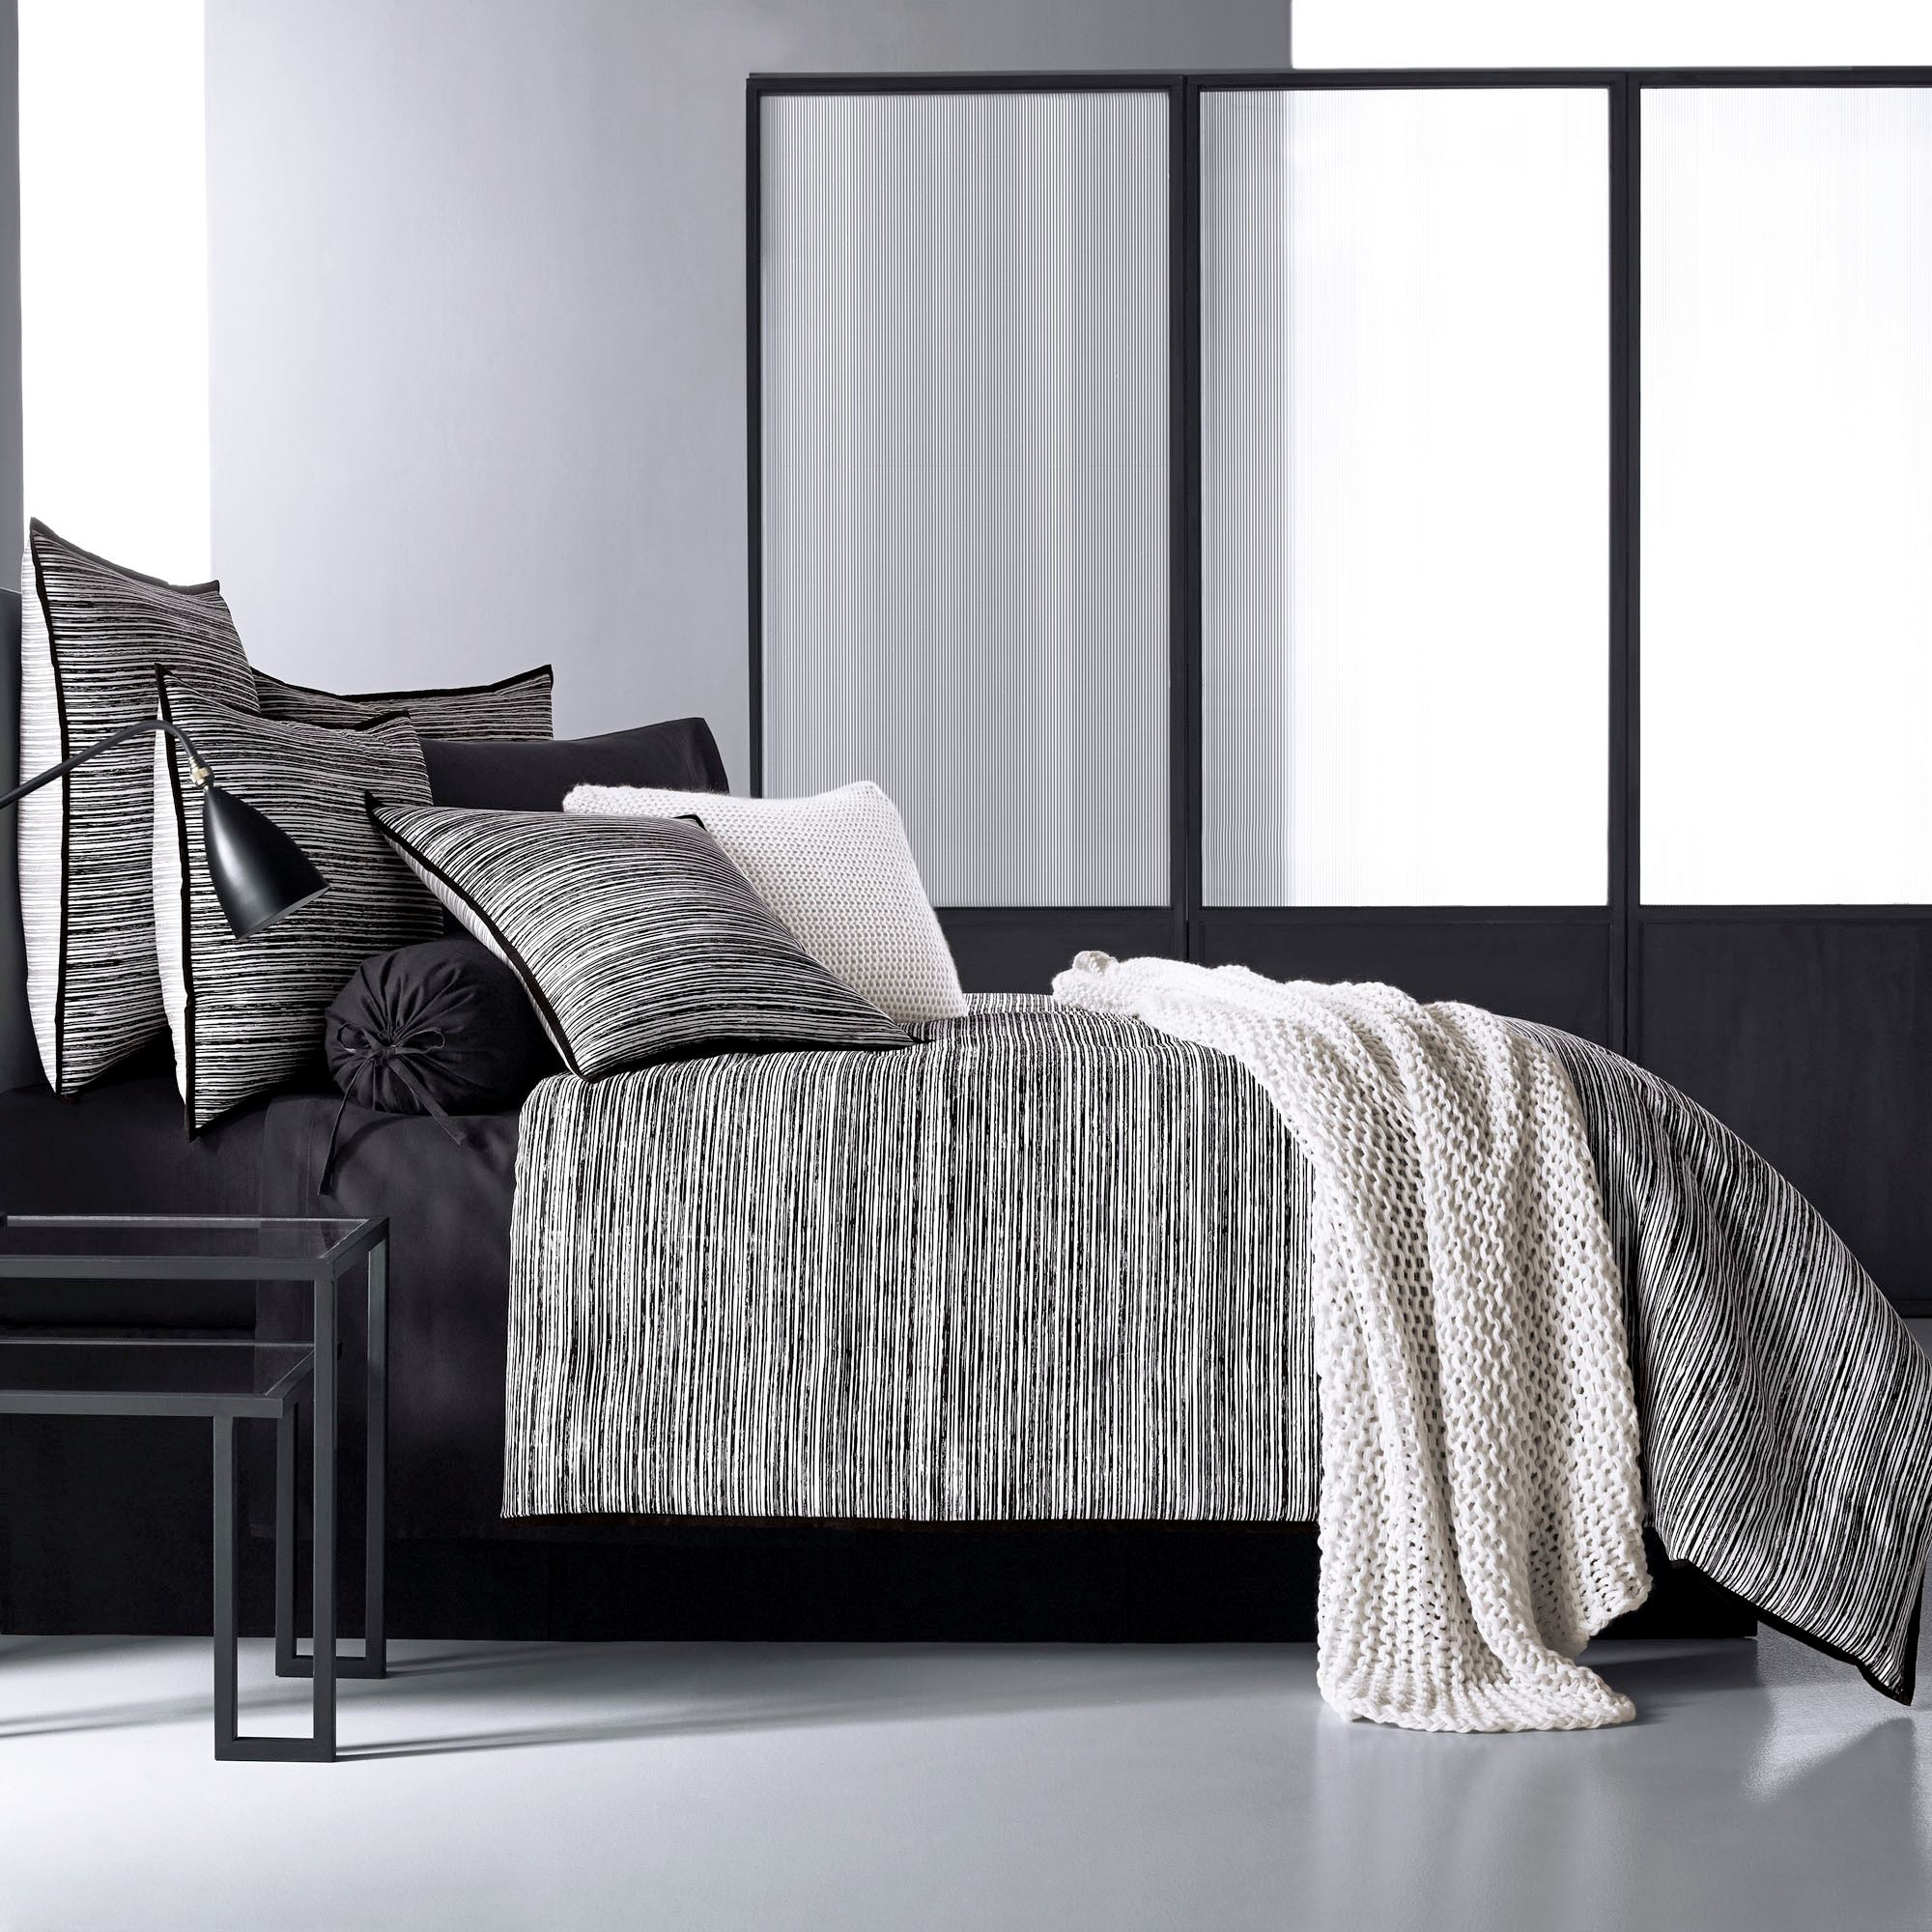 bykol comforter bedding striped yellow pierre set sets quality outstanding gray and black white grey jcpenn design